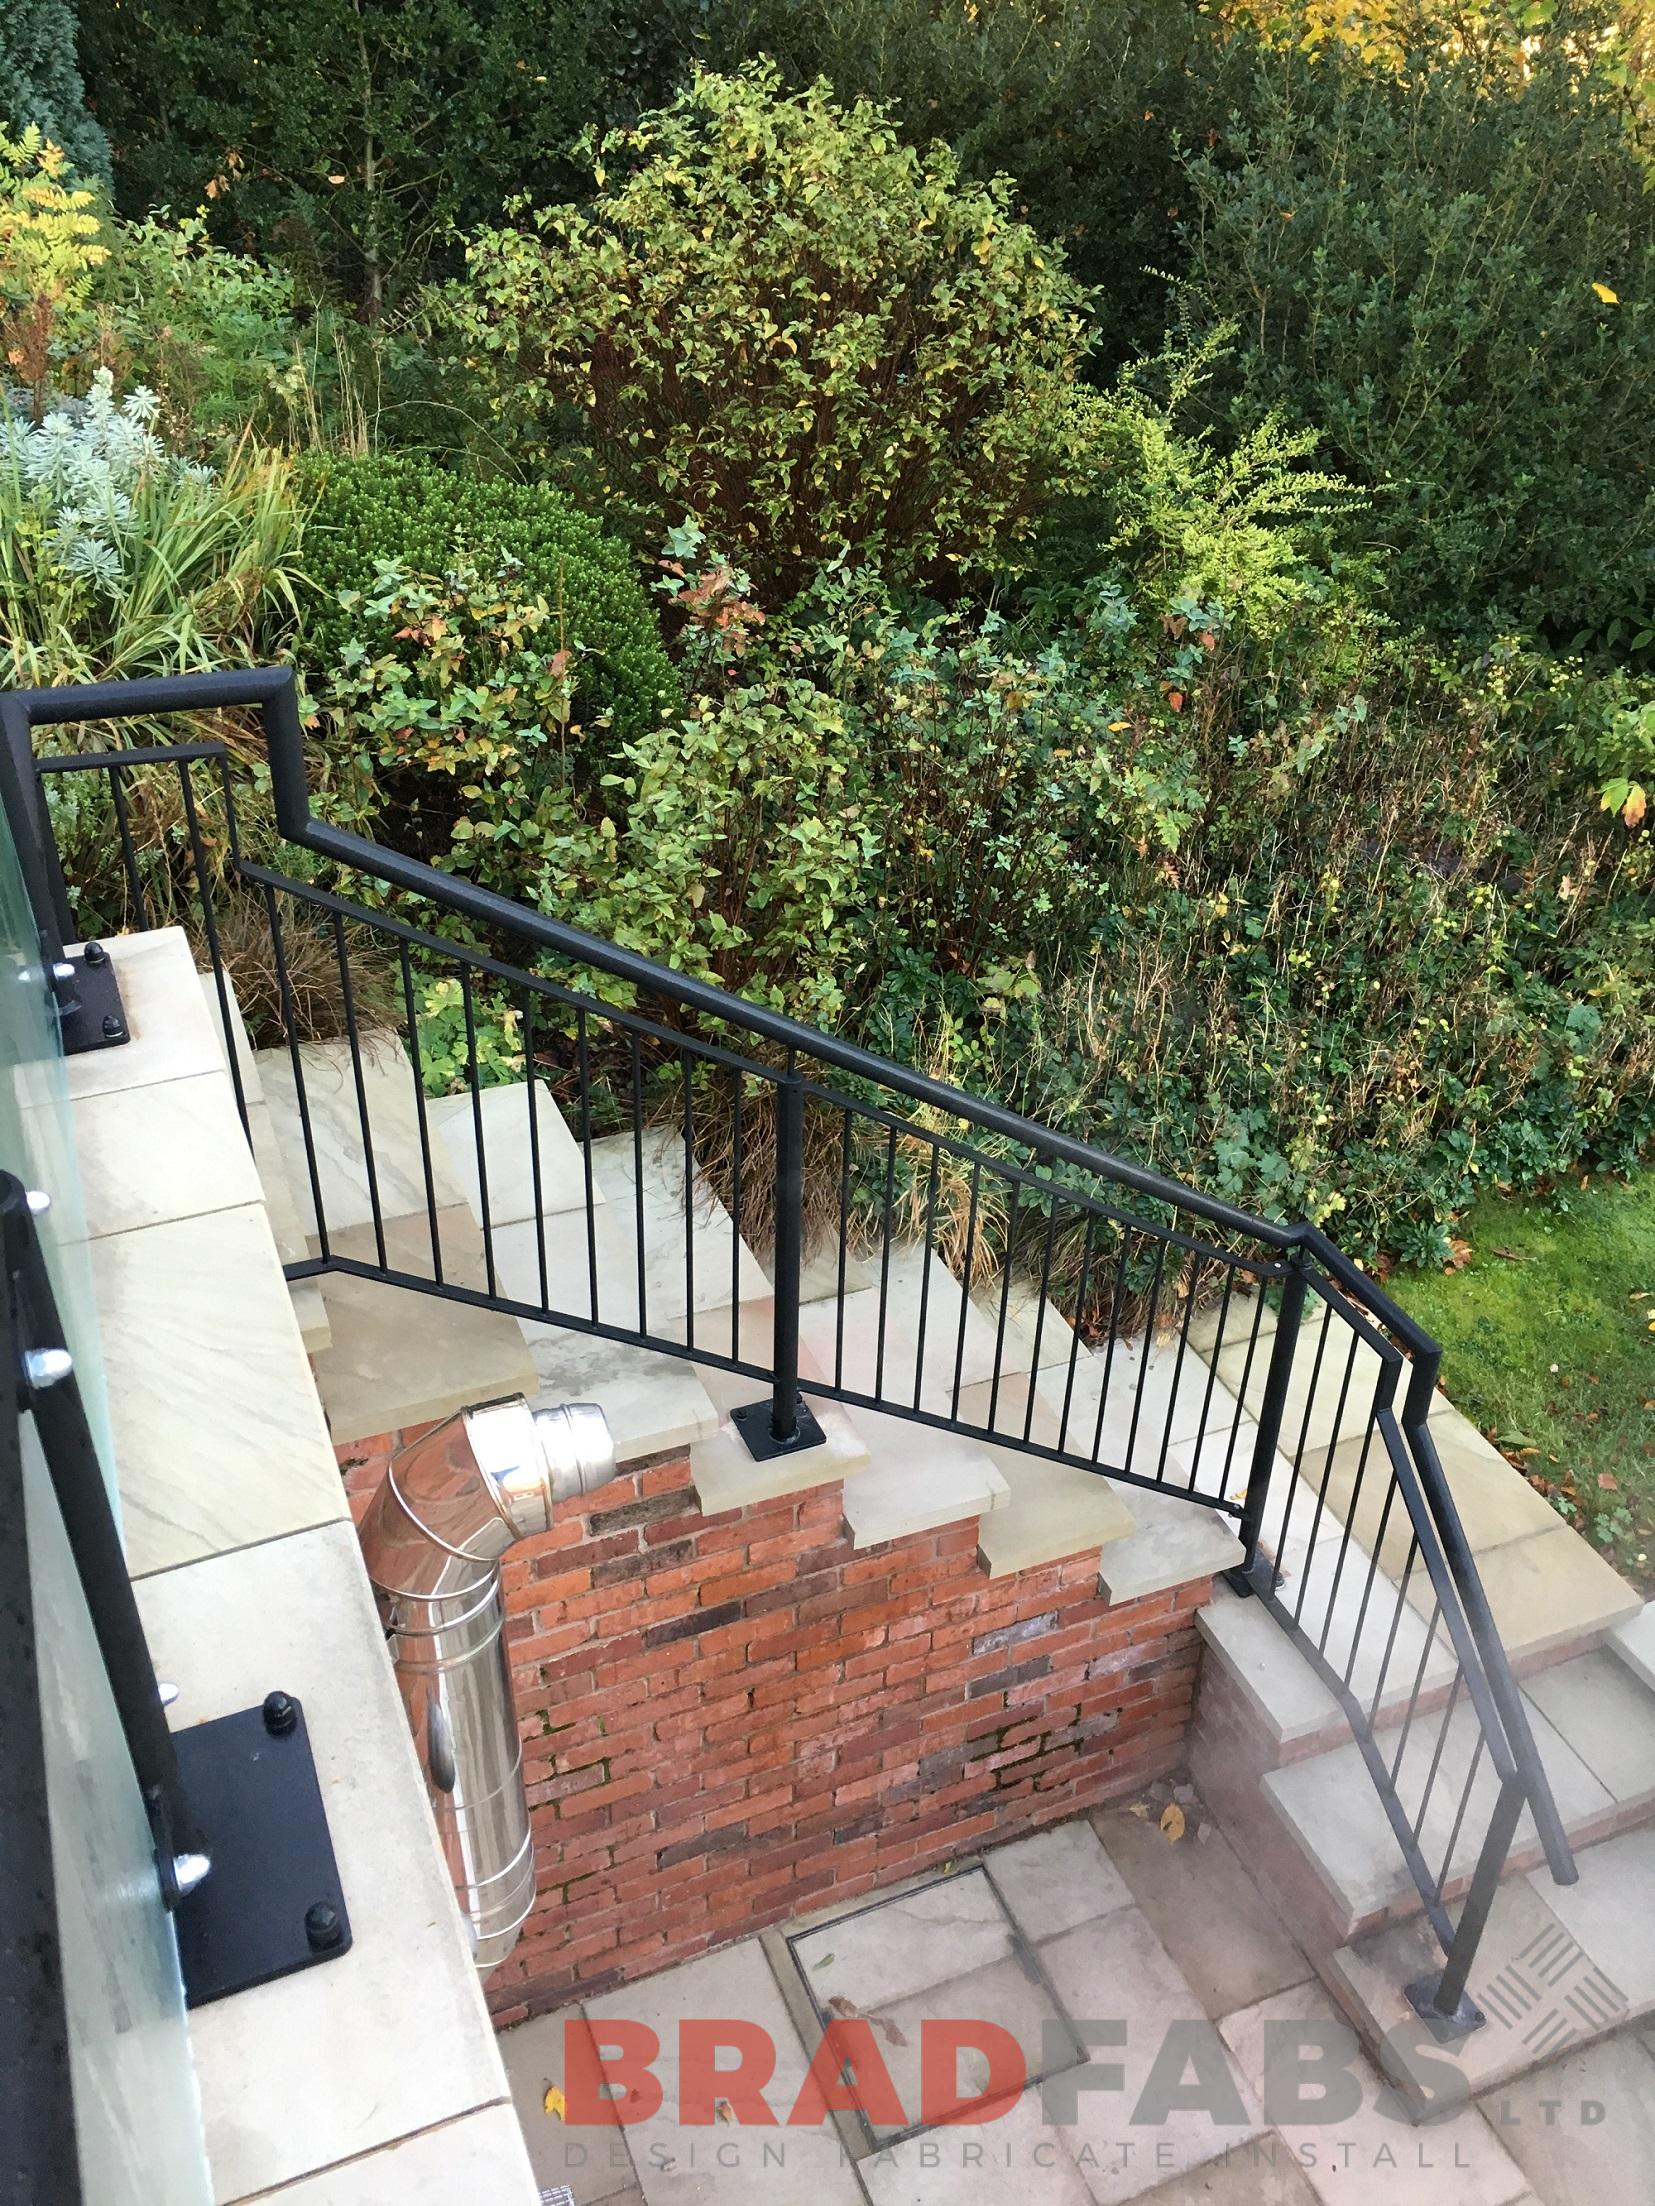 Mild steel, galvanised and powder coated black vertical bar railings going down the customers stairs to lead to their garden by Bradfabs